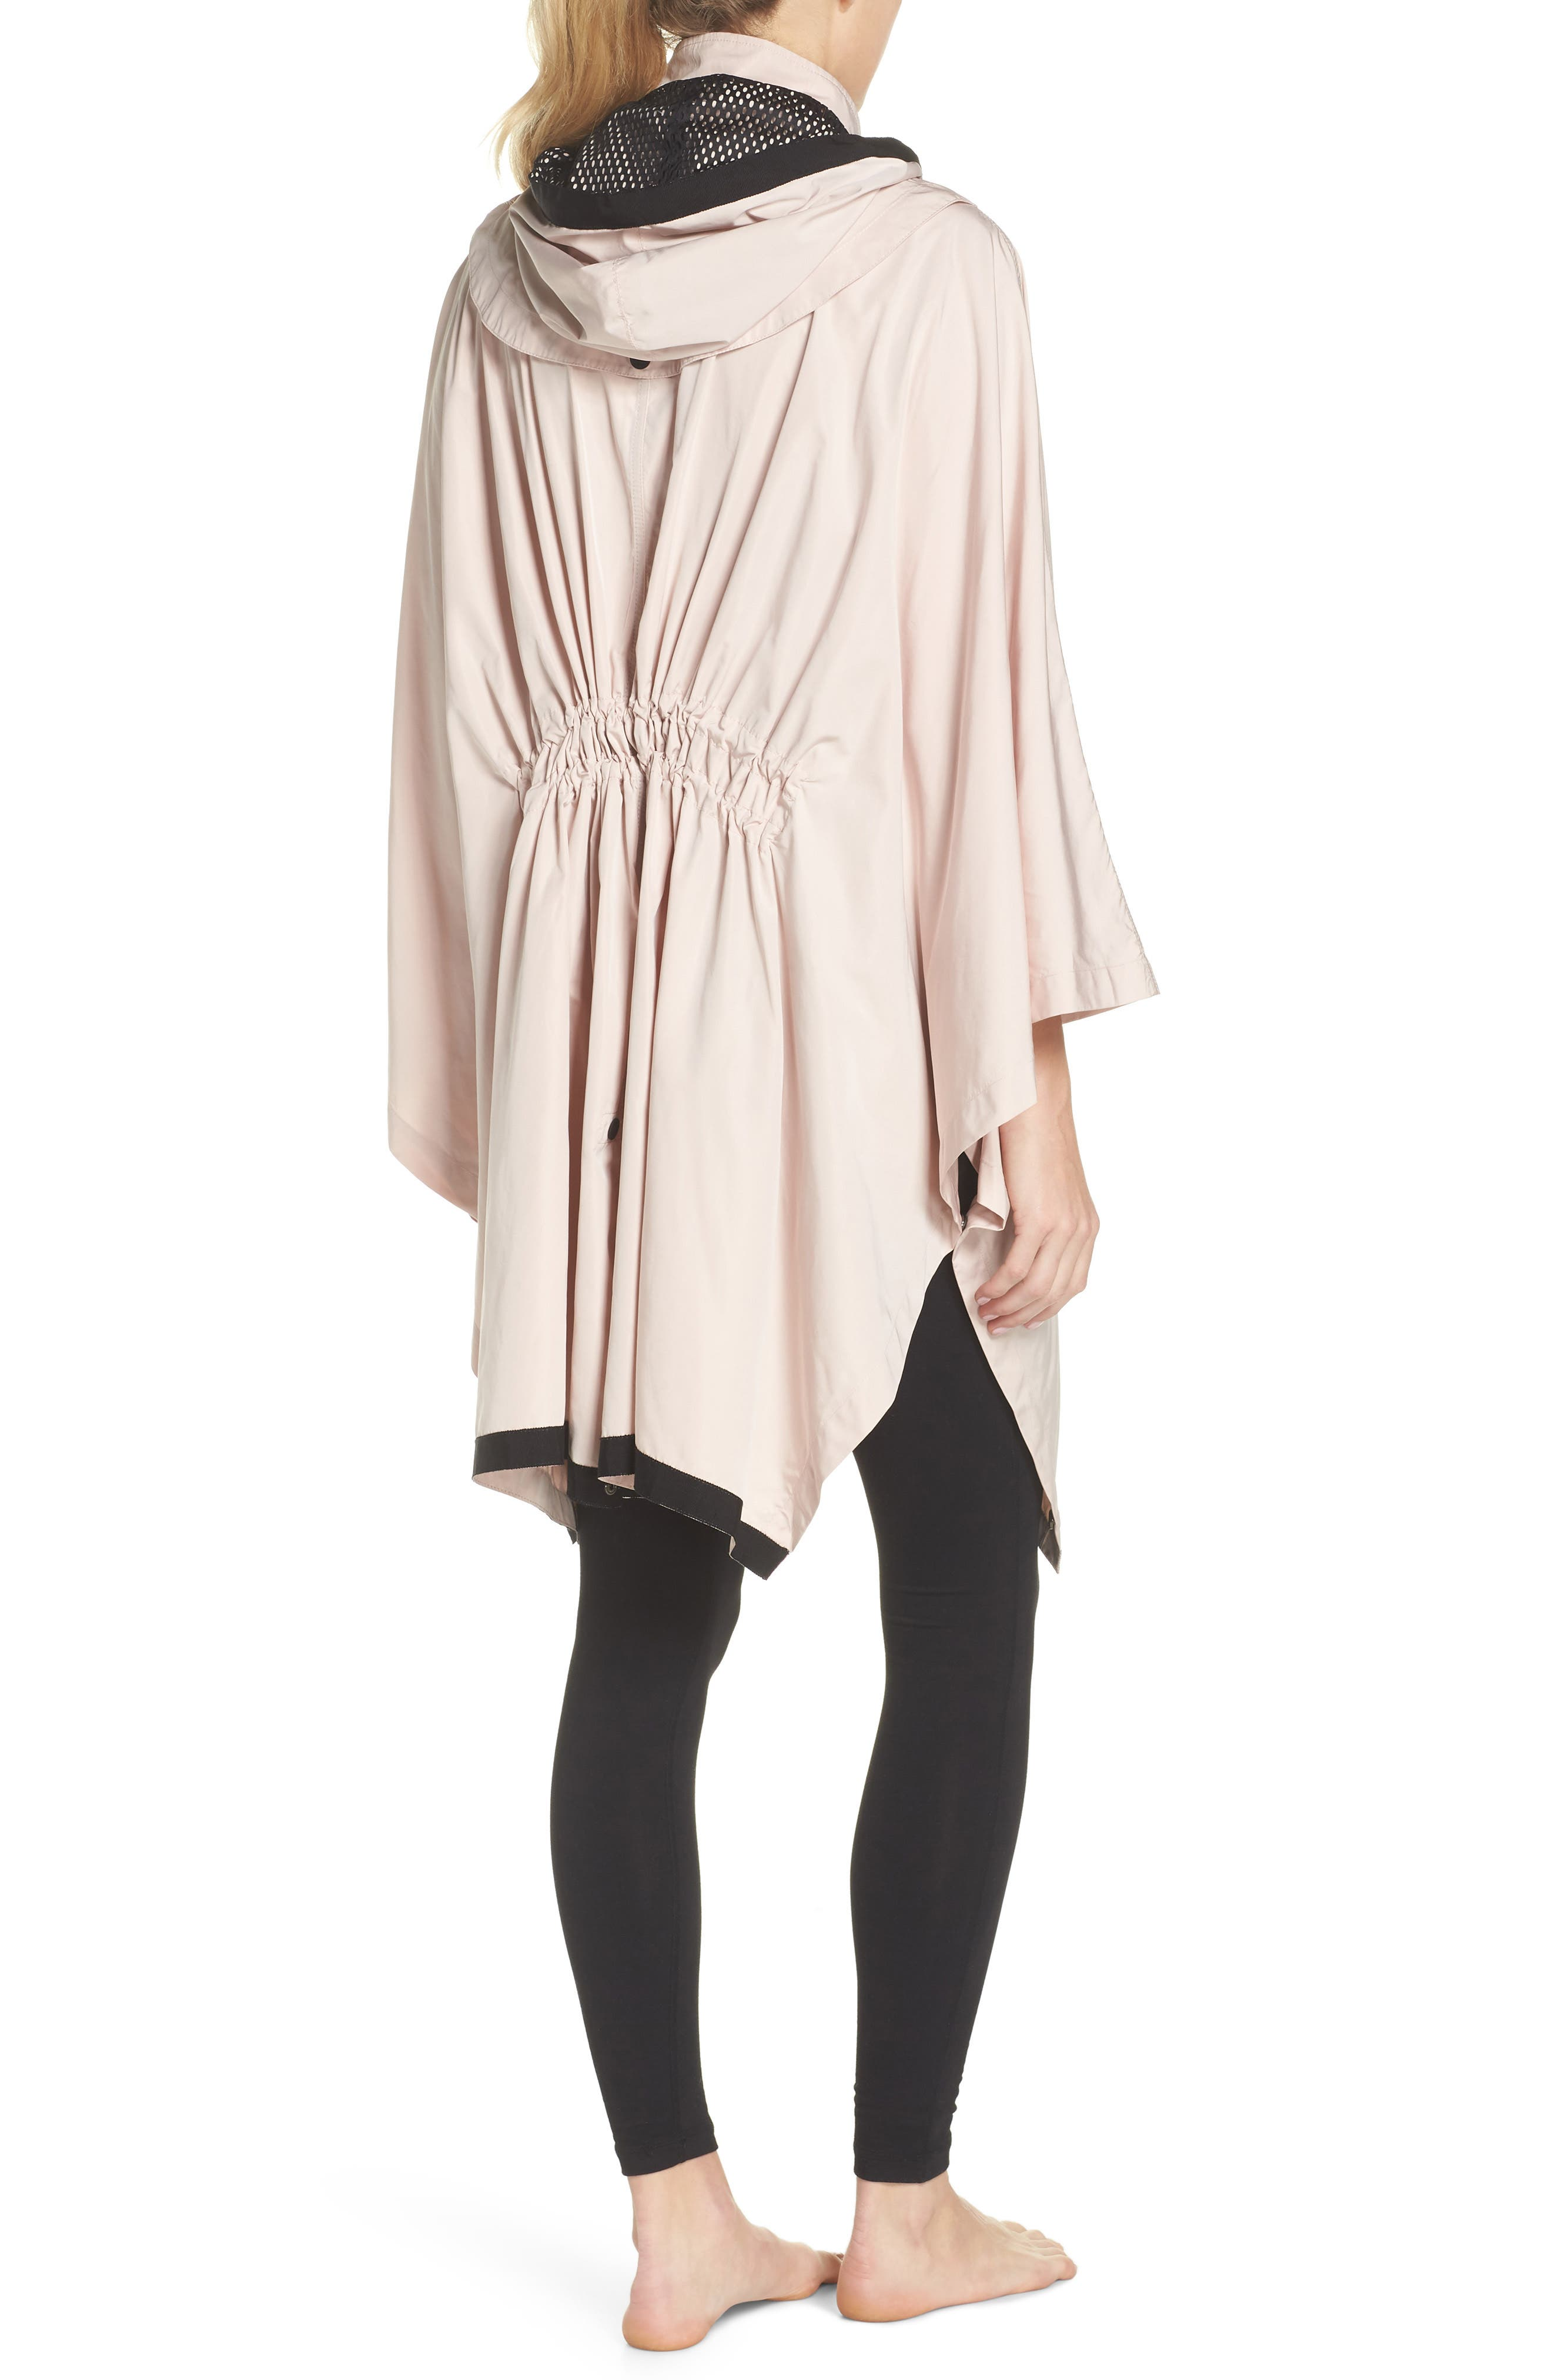 Stormie Poncho,                             Alternate thumbnail 2, color,                             Rose Grey/ Black